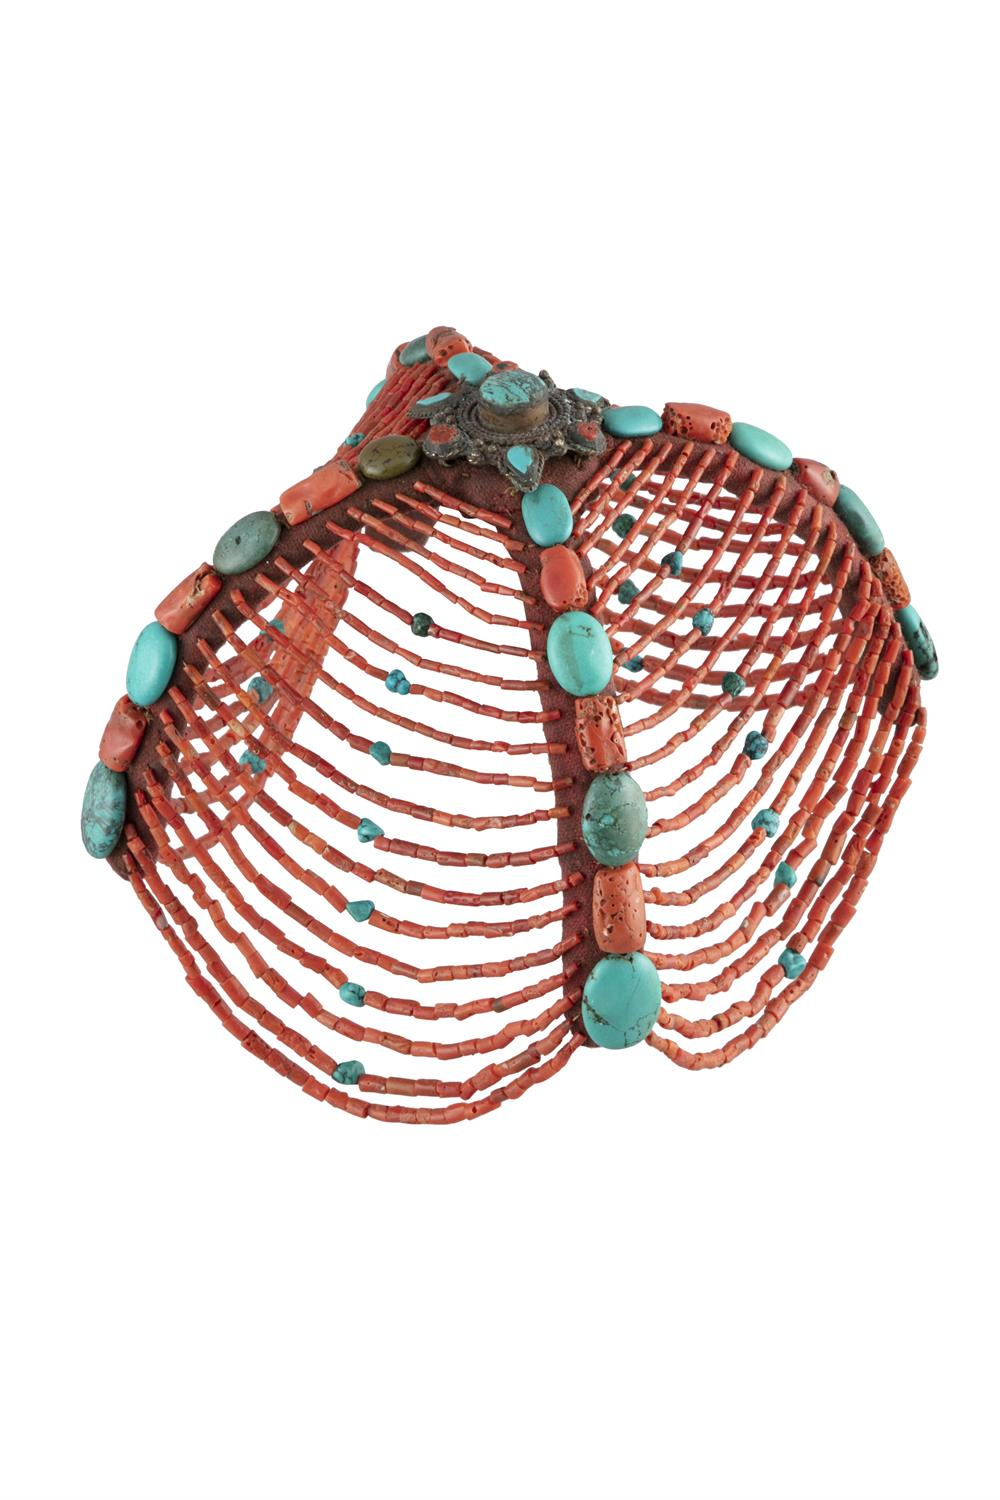 *A TIBETAN CEREMONIAL HEADDRESS Tibet, Himalaya, Likely mid 20th century With turquoise and corals - Image 2 of 2